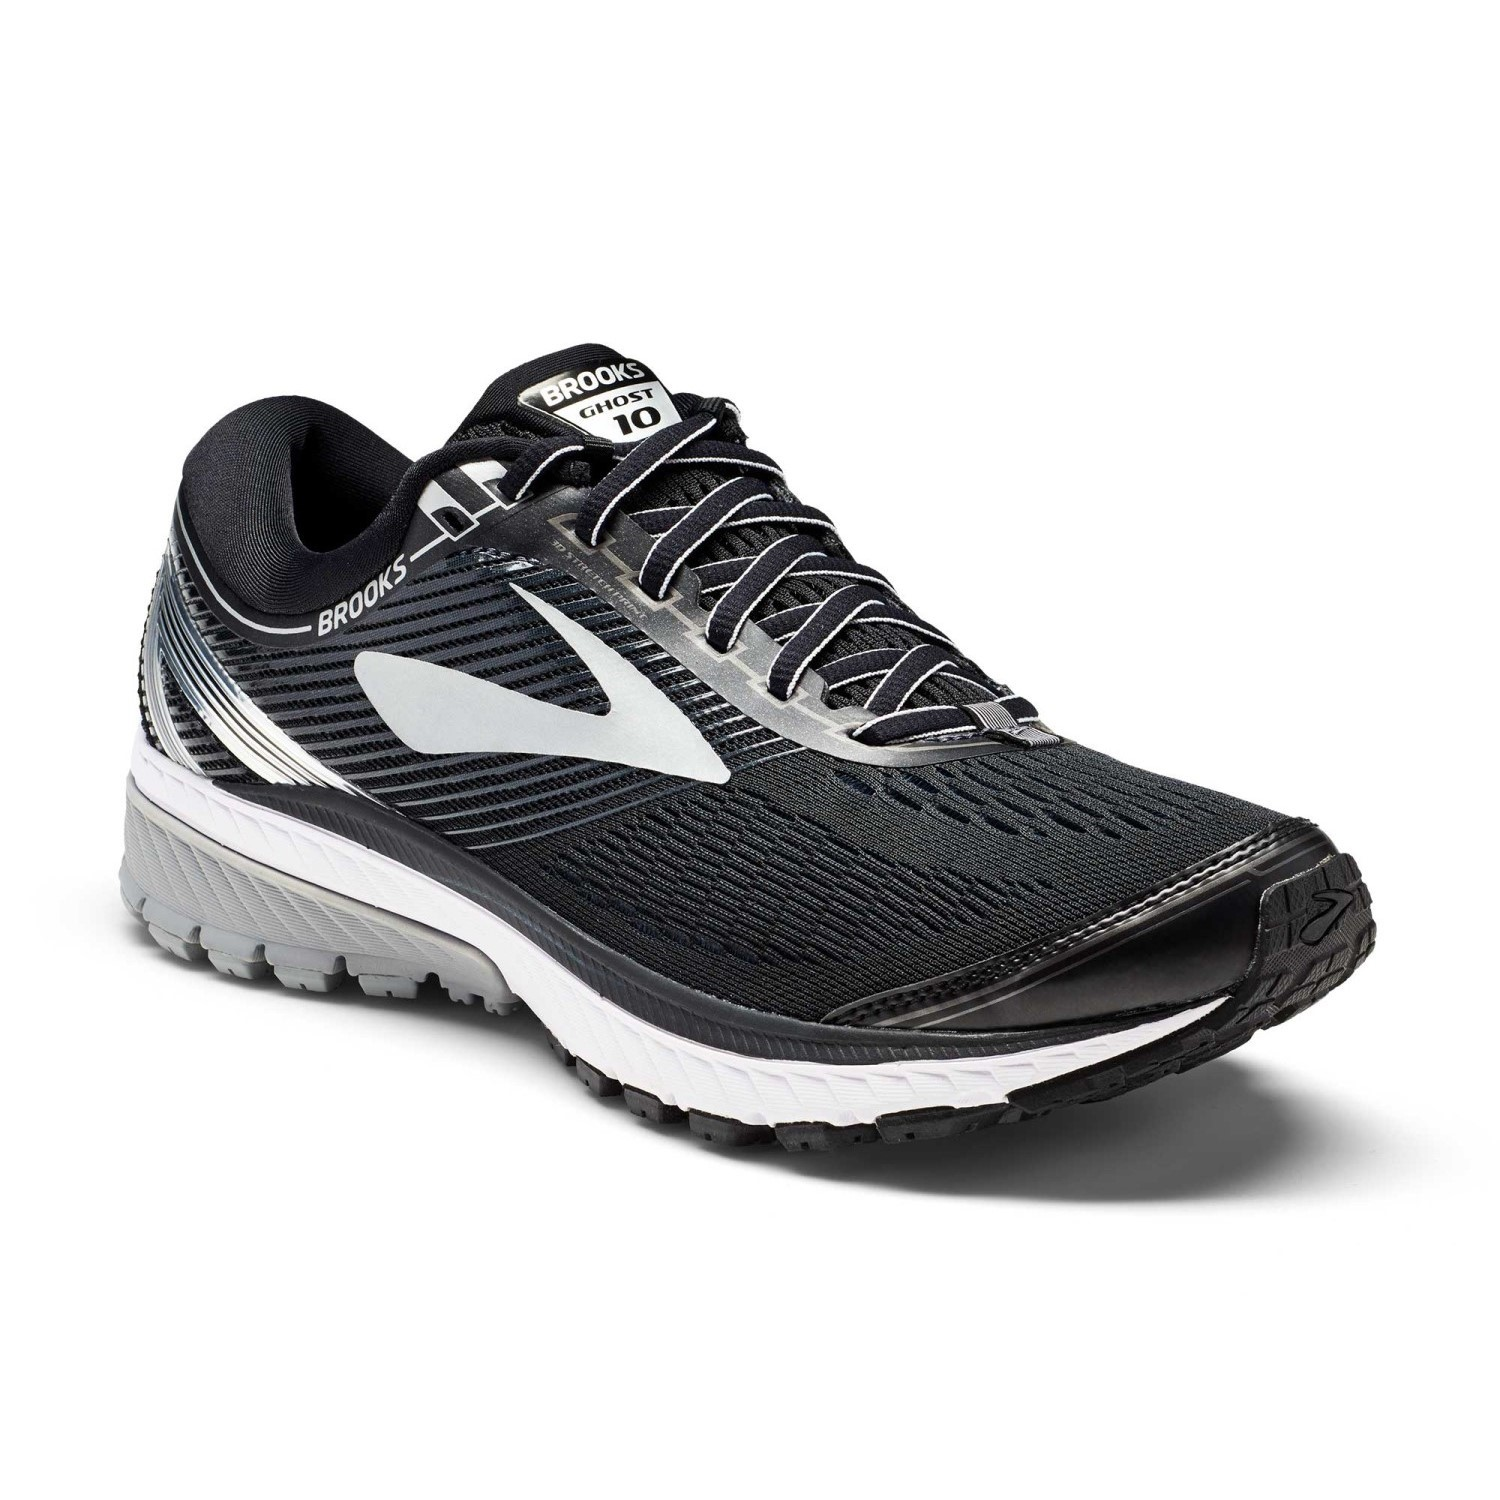 ff00608a58be4 Brooks Ghost 10 - Mens Running Shoes - Black Silver Ebony